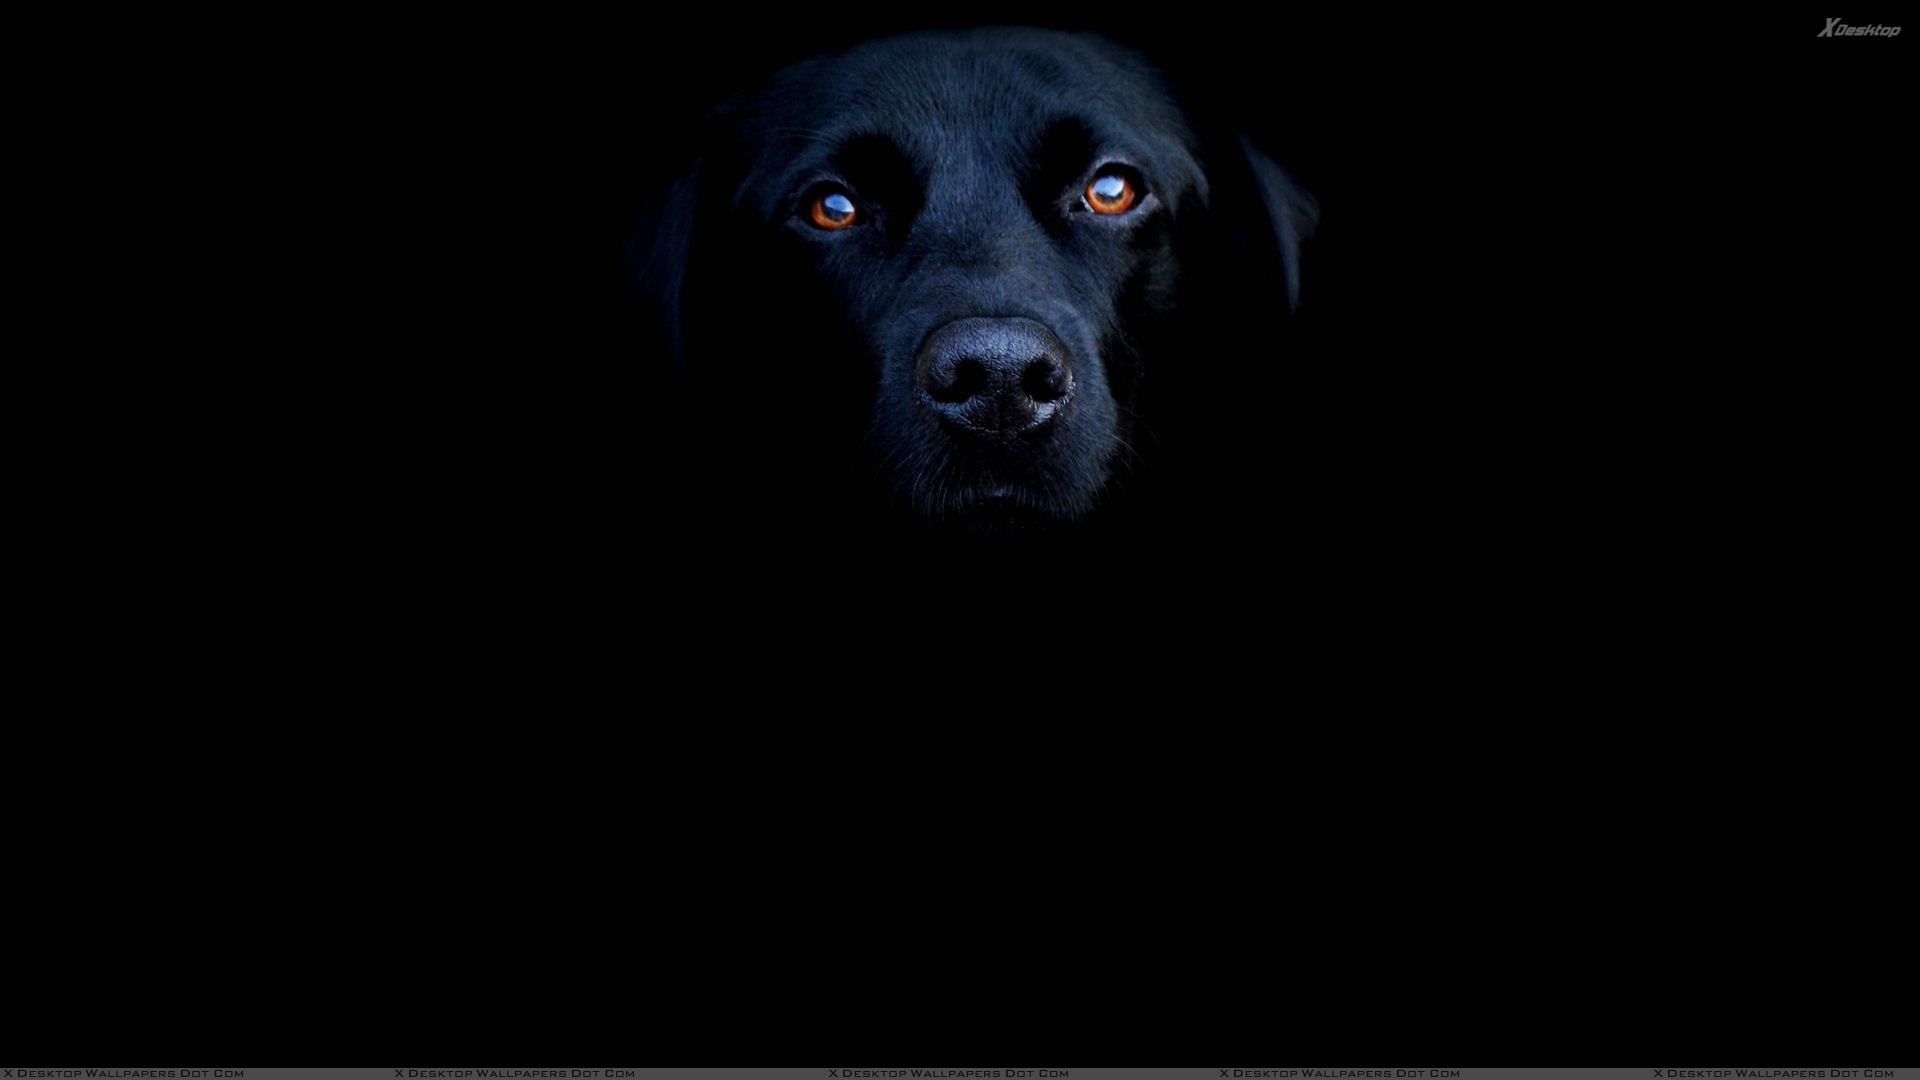 Black Labrador Face Closeup On Black Background Wallpaper 1920x1080